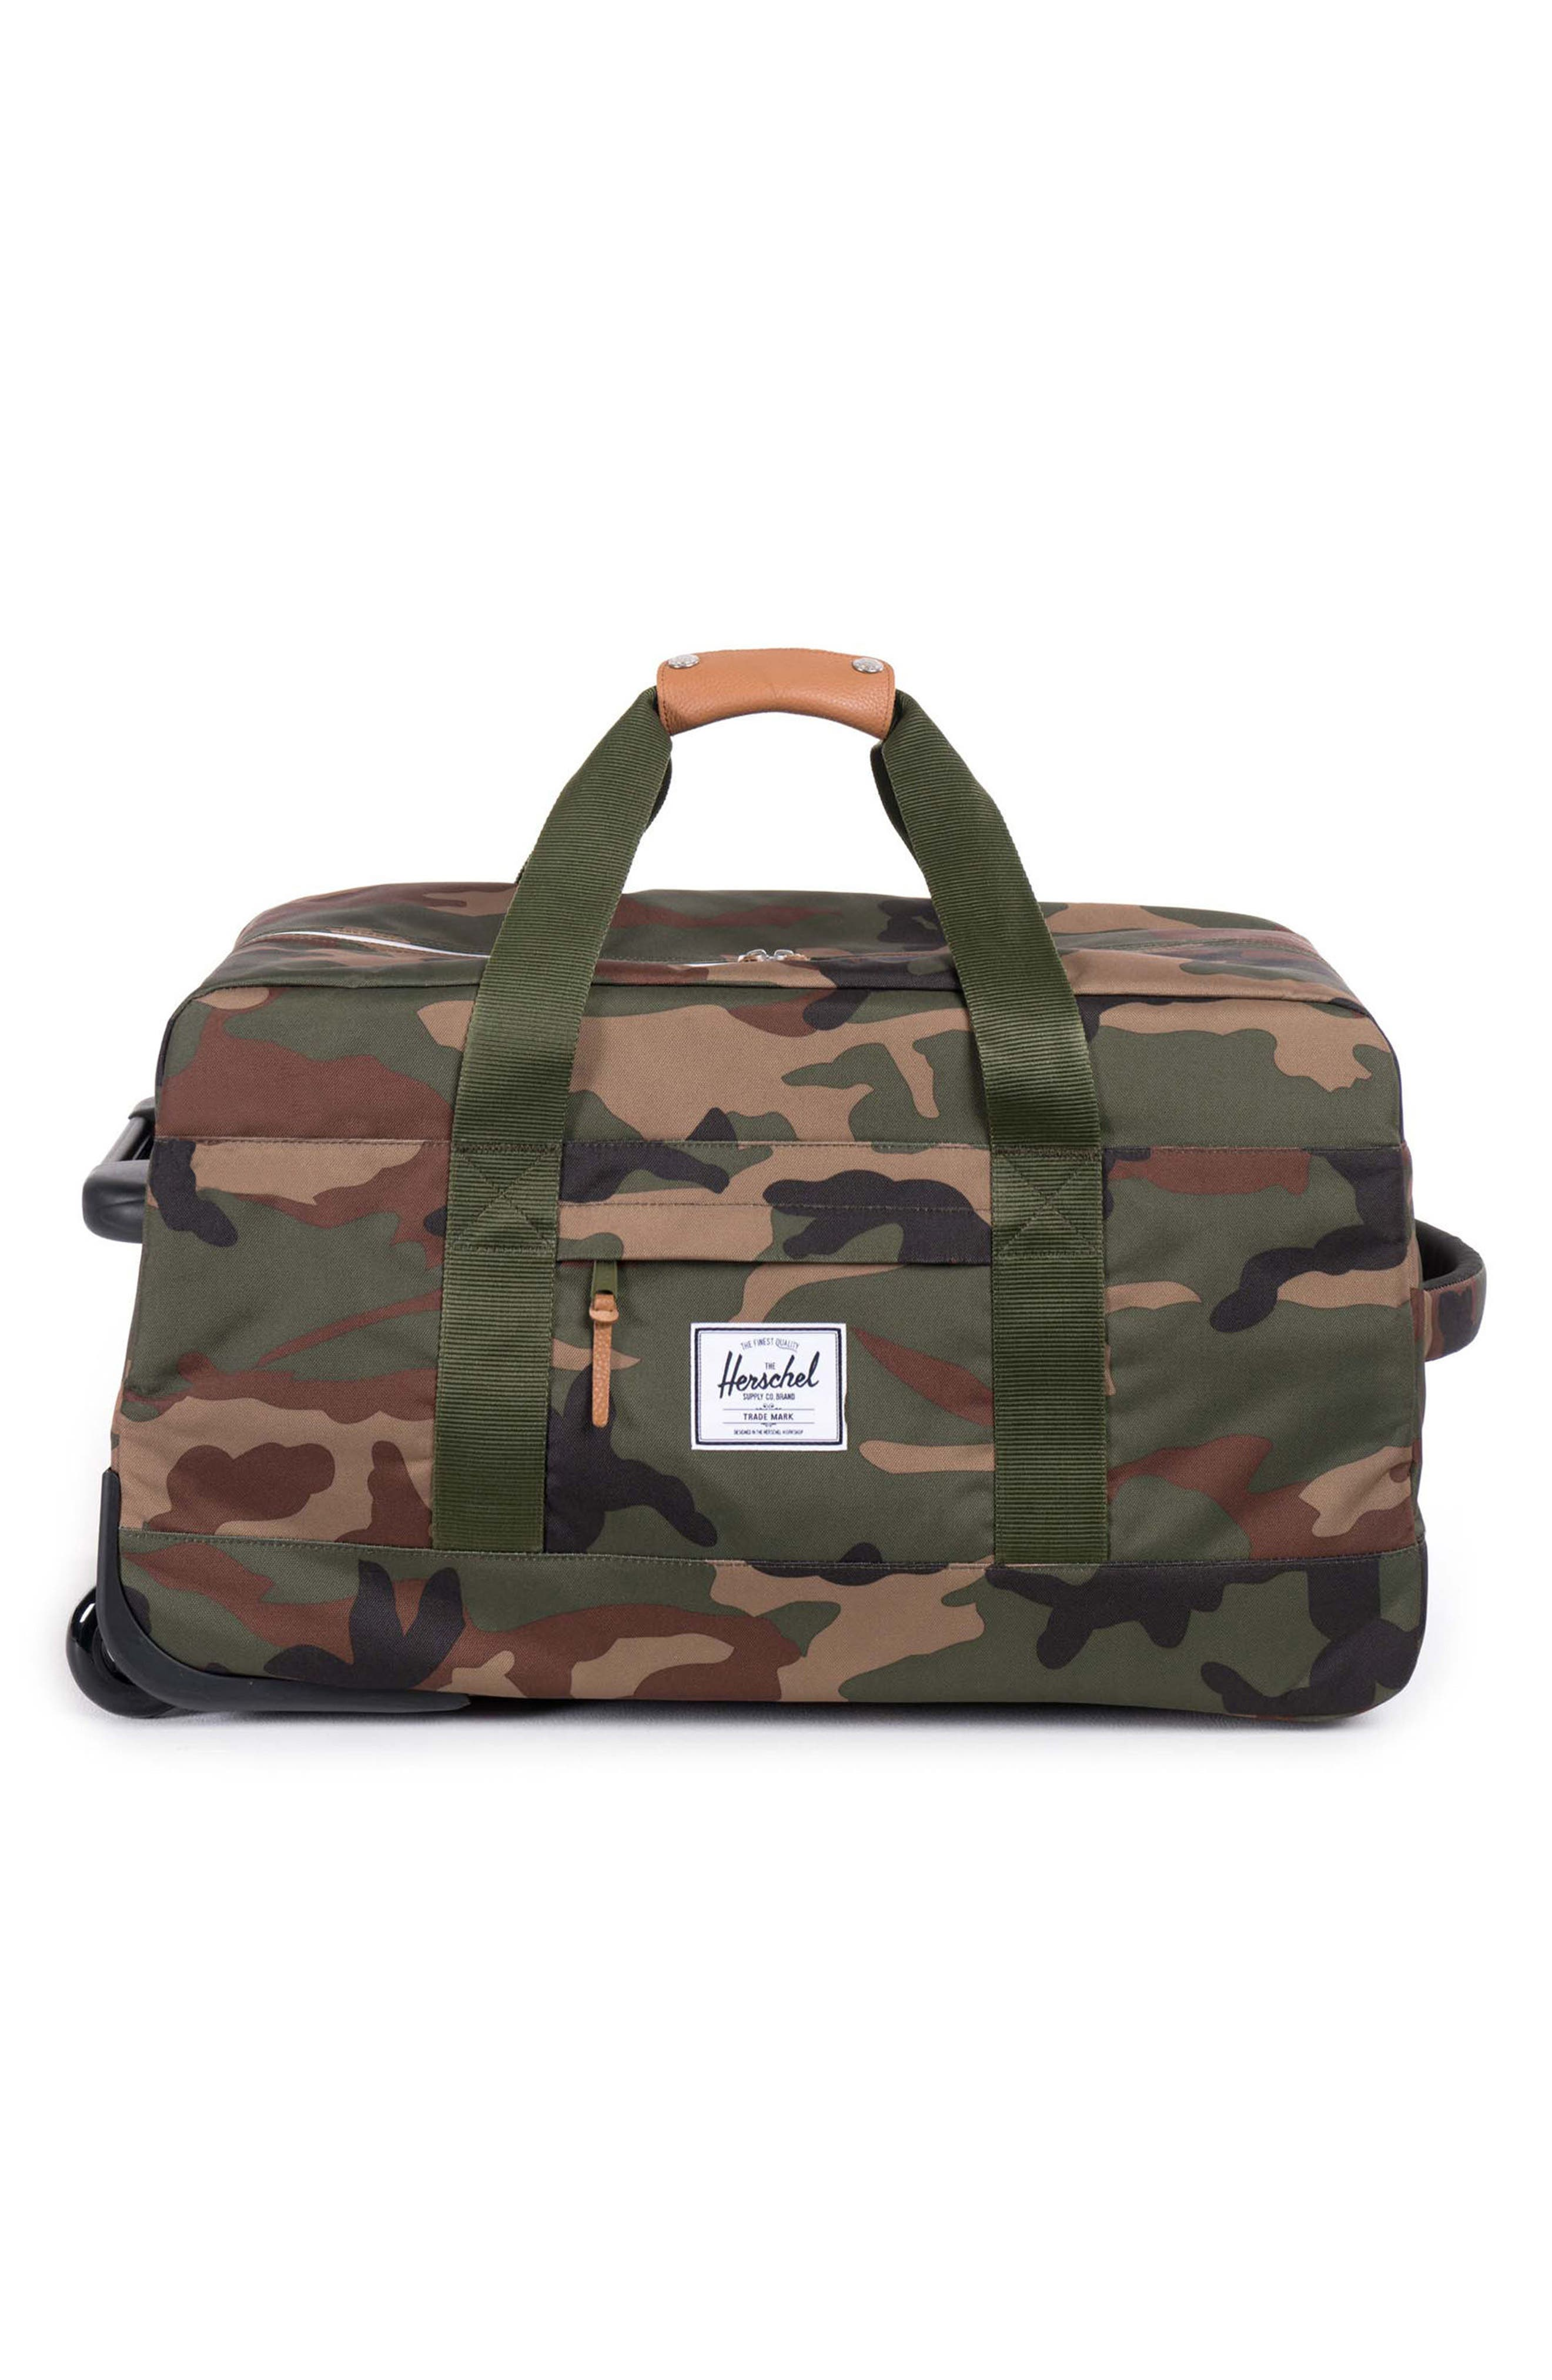 Herschel Supply Co. Wheelie Outfitter 24-Inch Duffel Bag